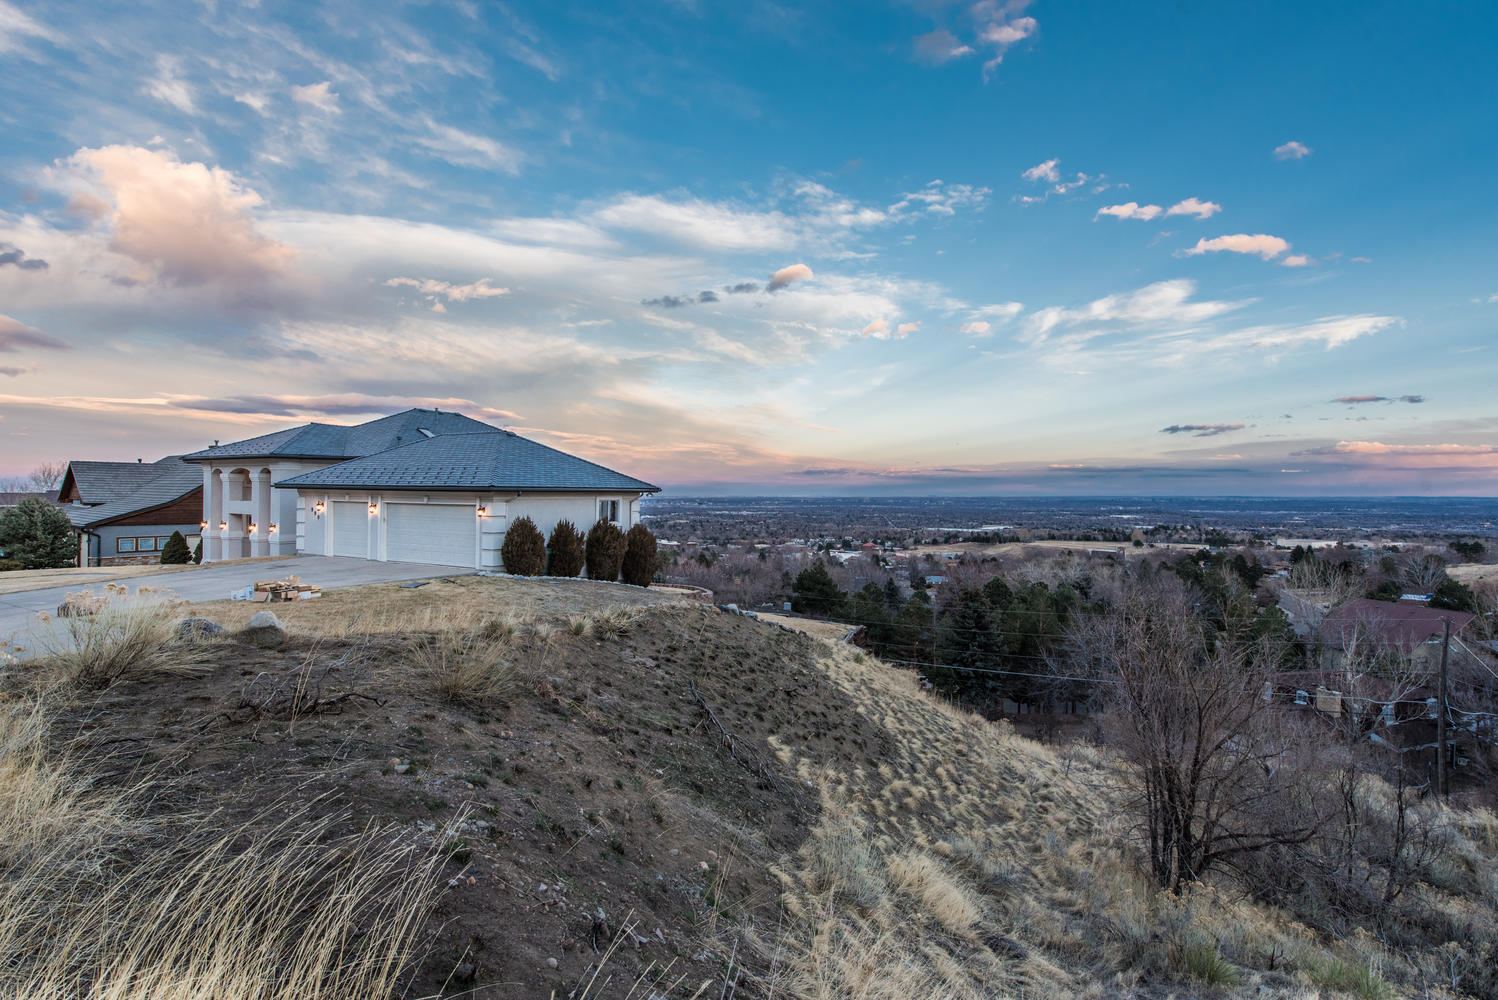 Single Family Home for Sale at Magnificent views in every direction! 980 S Coors Drive Lakewood, Colorado, 80228 United States